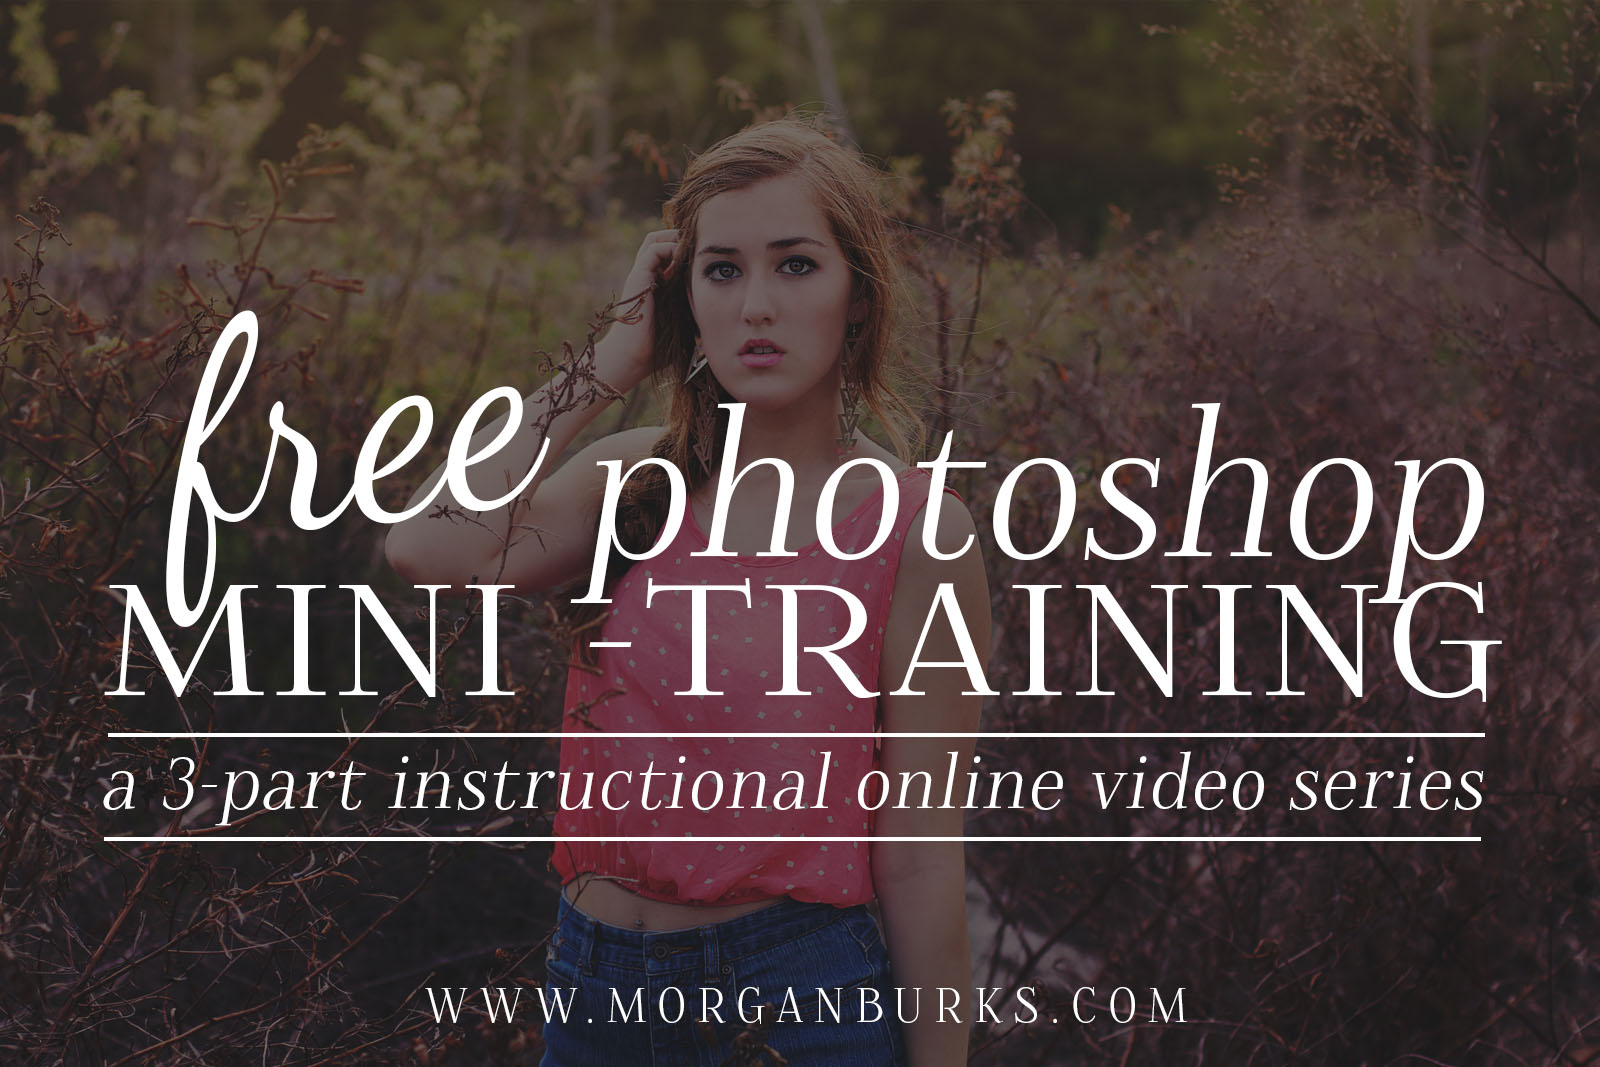 Free Online Photoshop Training where I'll show you how to completely edit an image using just ONE type of adjustment in Photoshop!